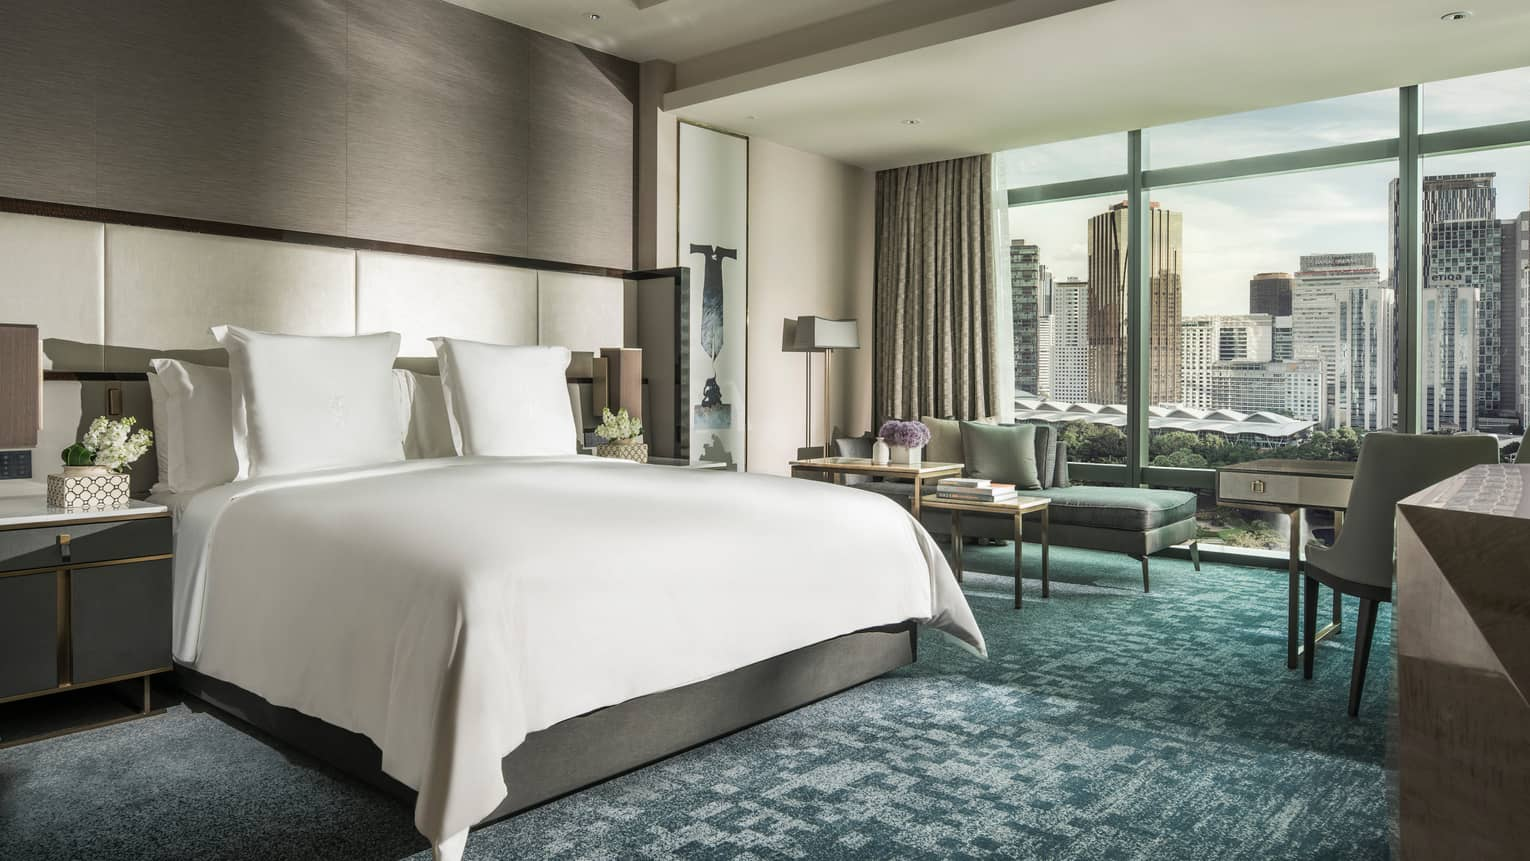 Deluxe King Park-View Room with skyline beyond the window